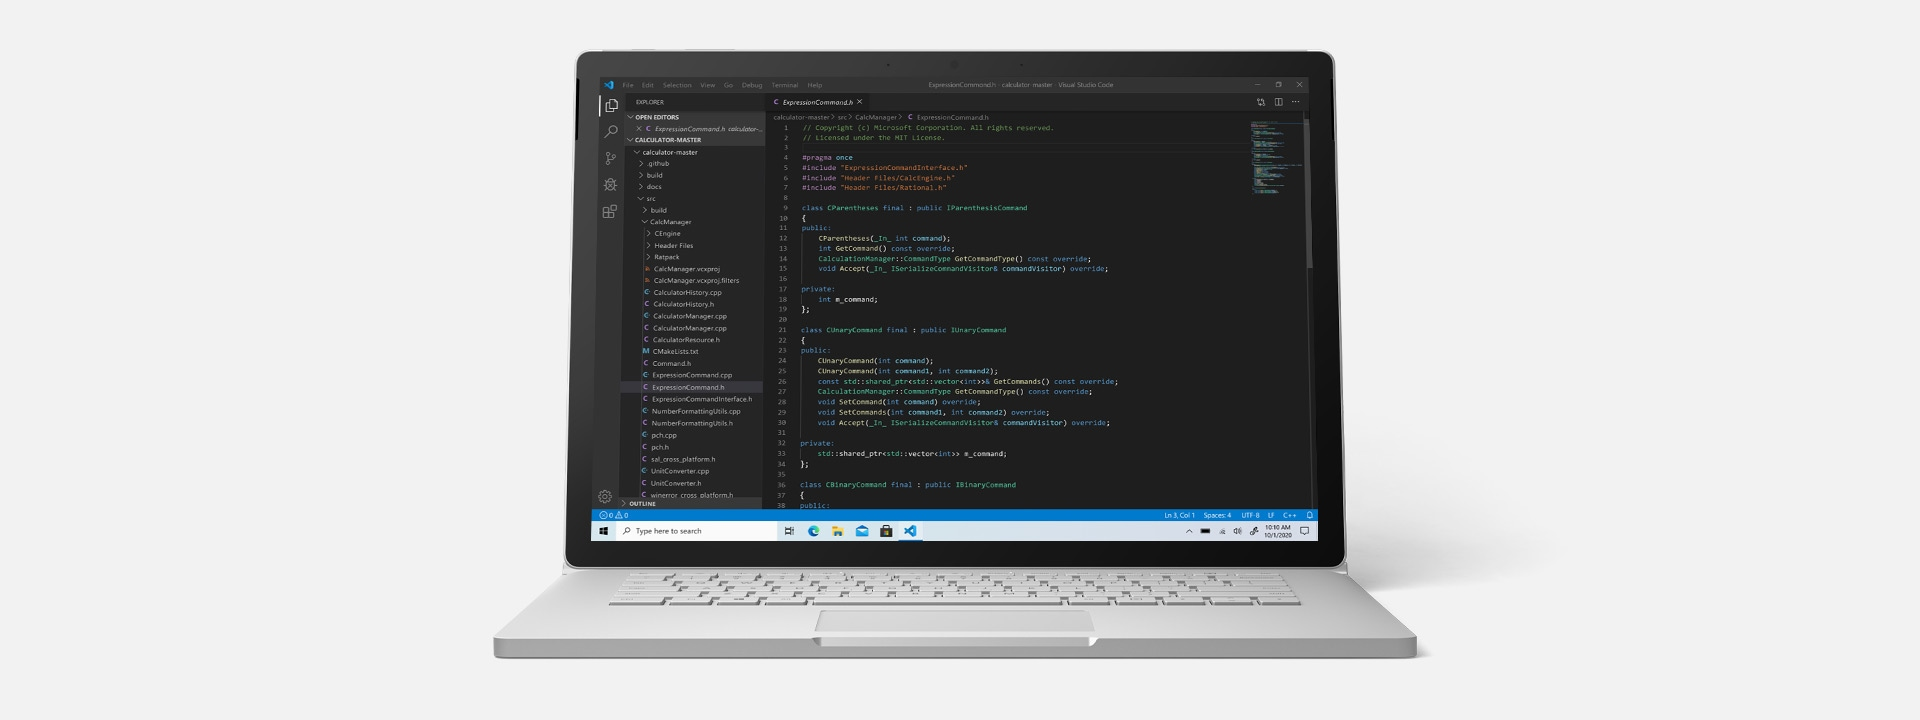 Surface Book 3 running Microsoft Visual Studio